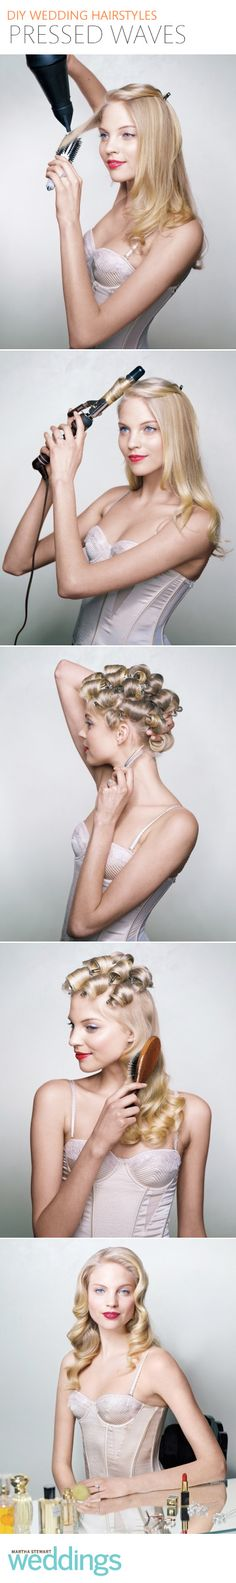 Learn how to master this glamorous pressed waves hairstyle!